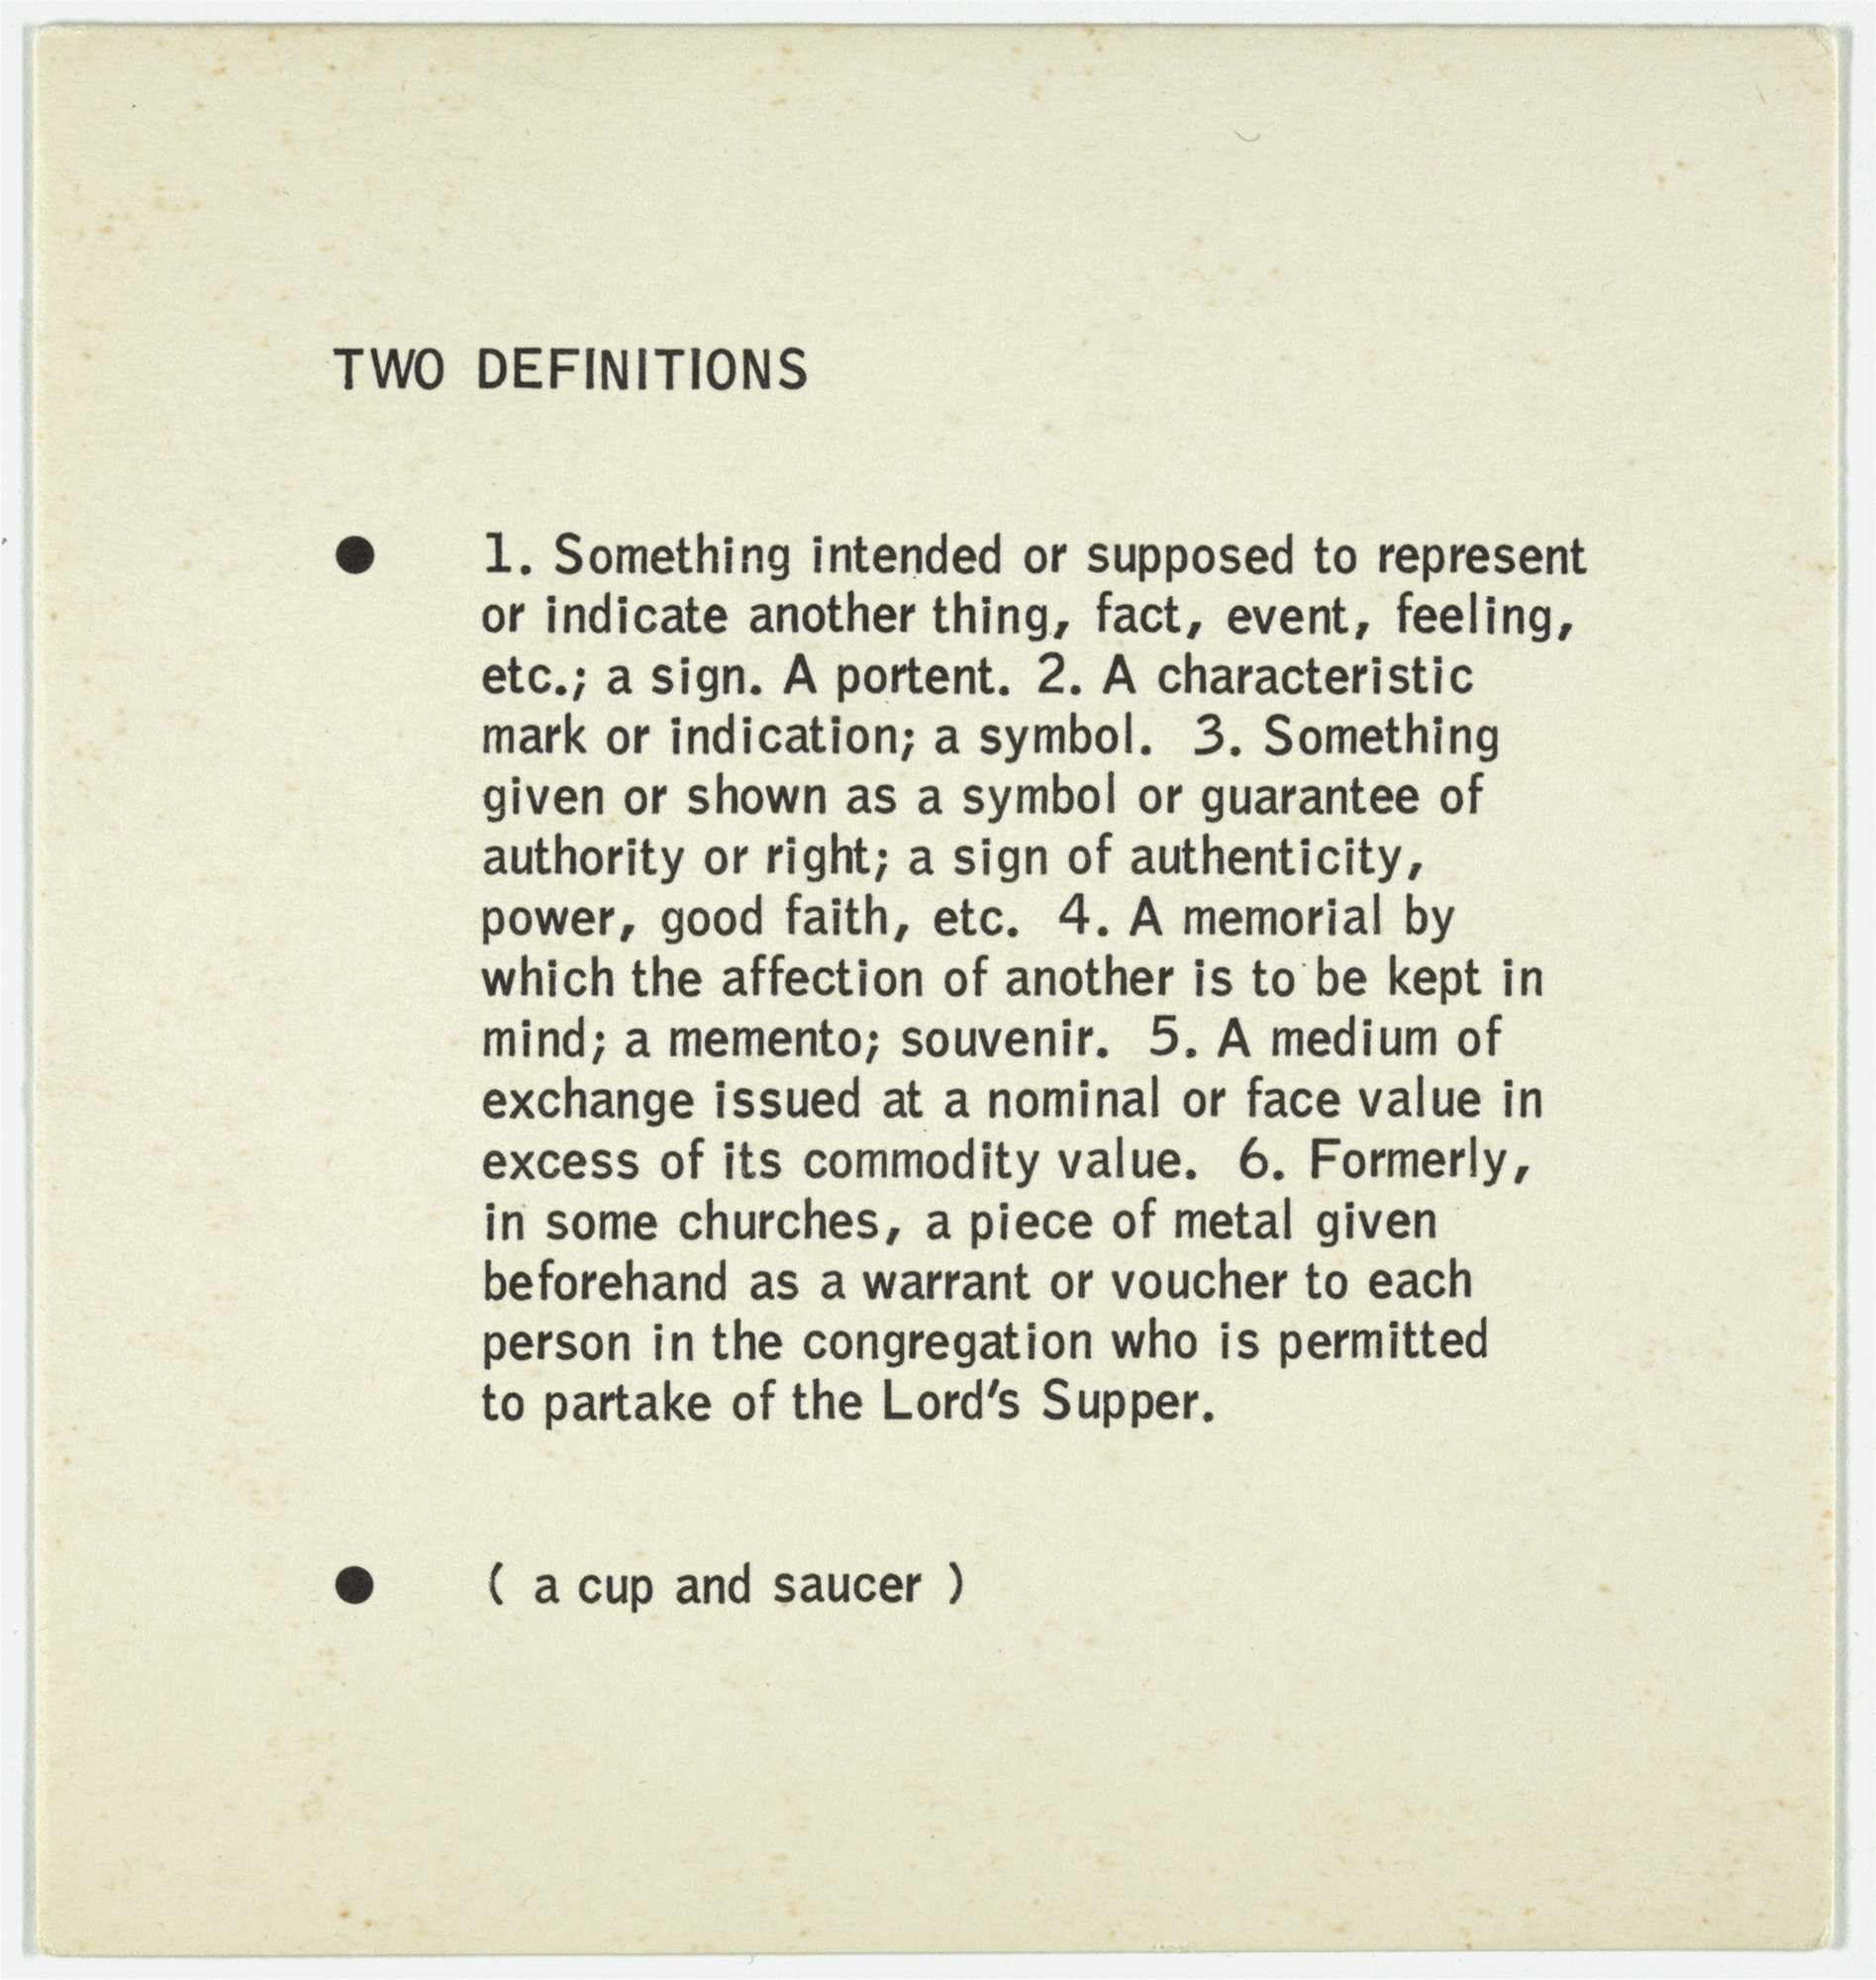 George Brecht. Two Definitions from Water Yam. 1963